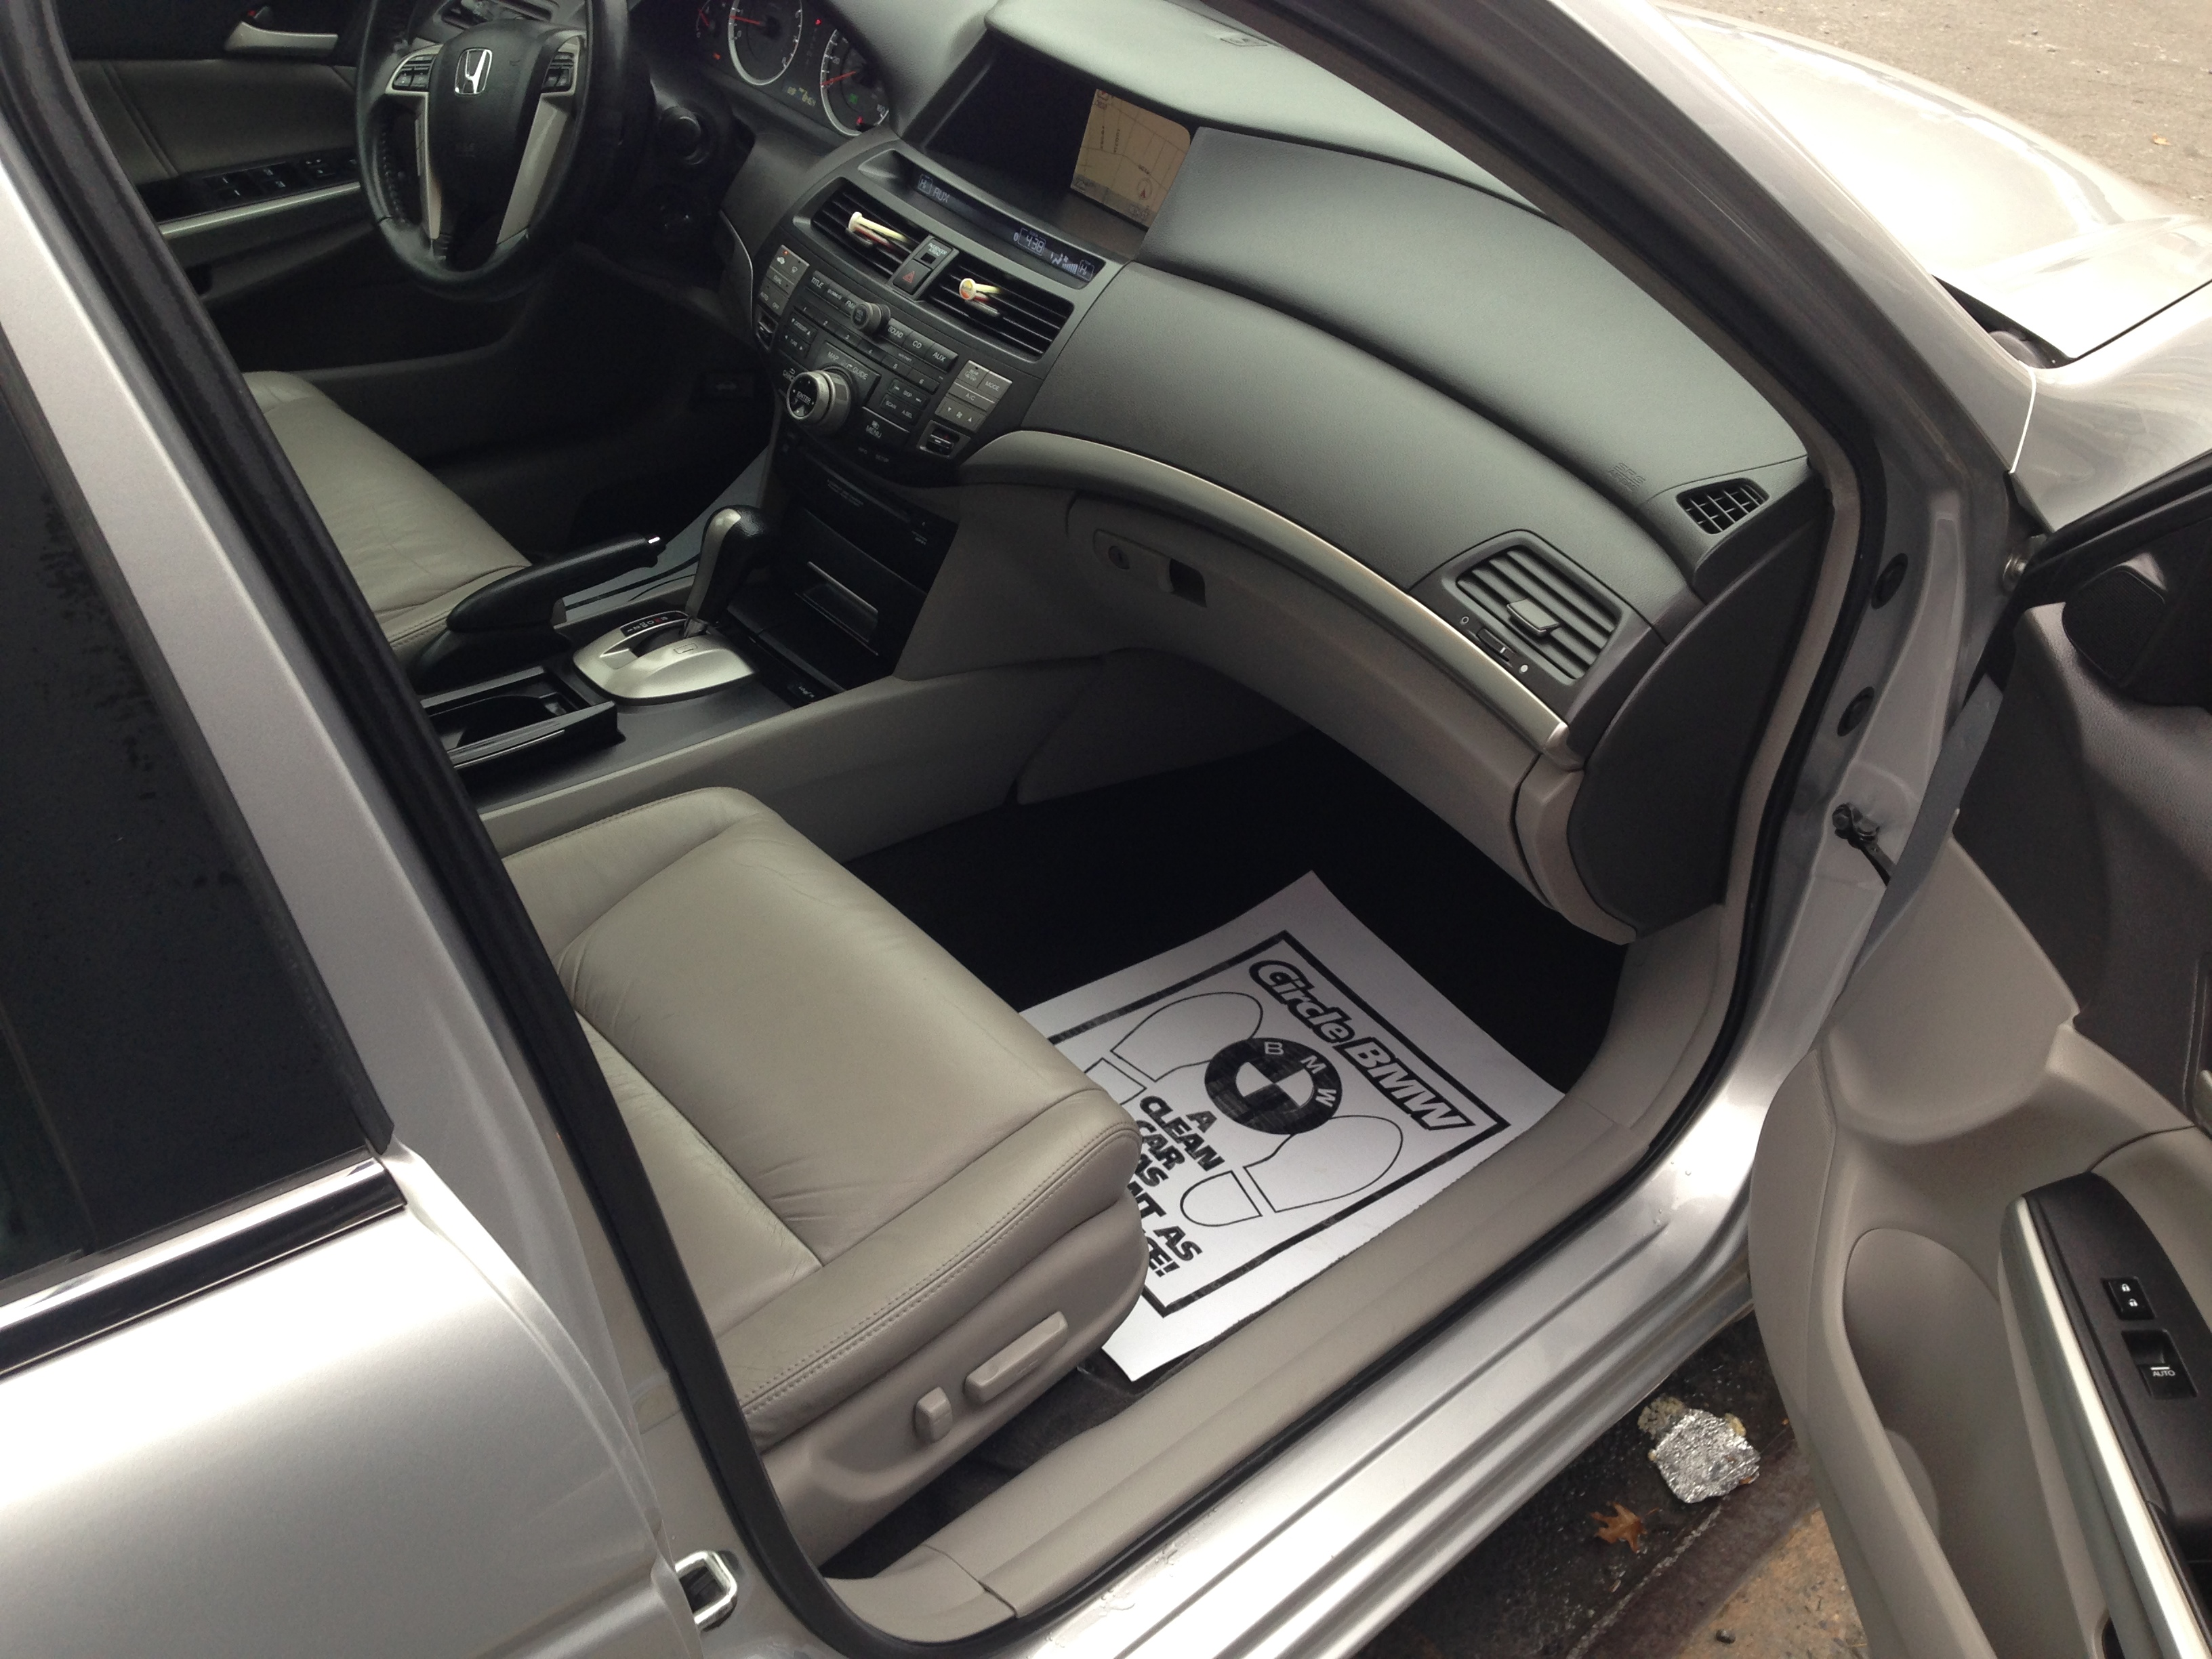 2008 Accord EX-L With Navigation